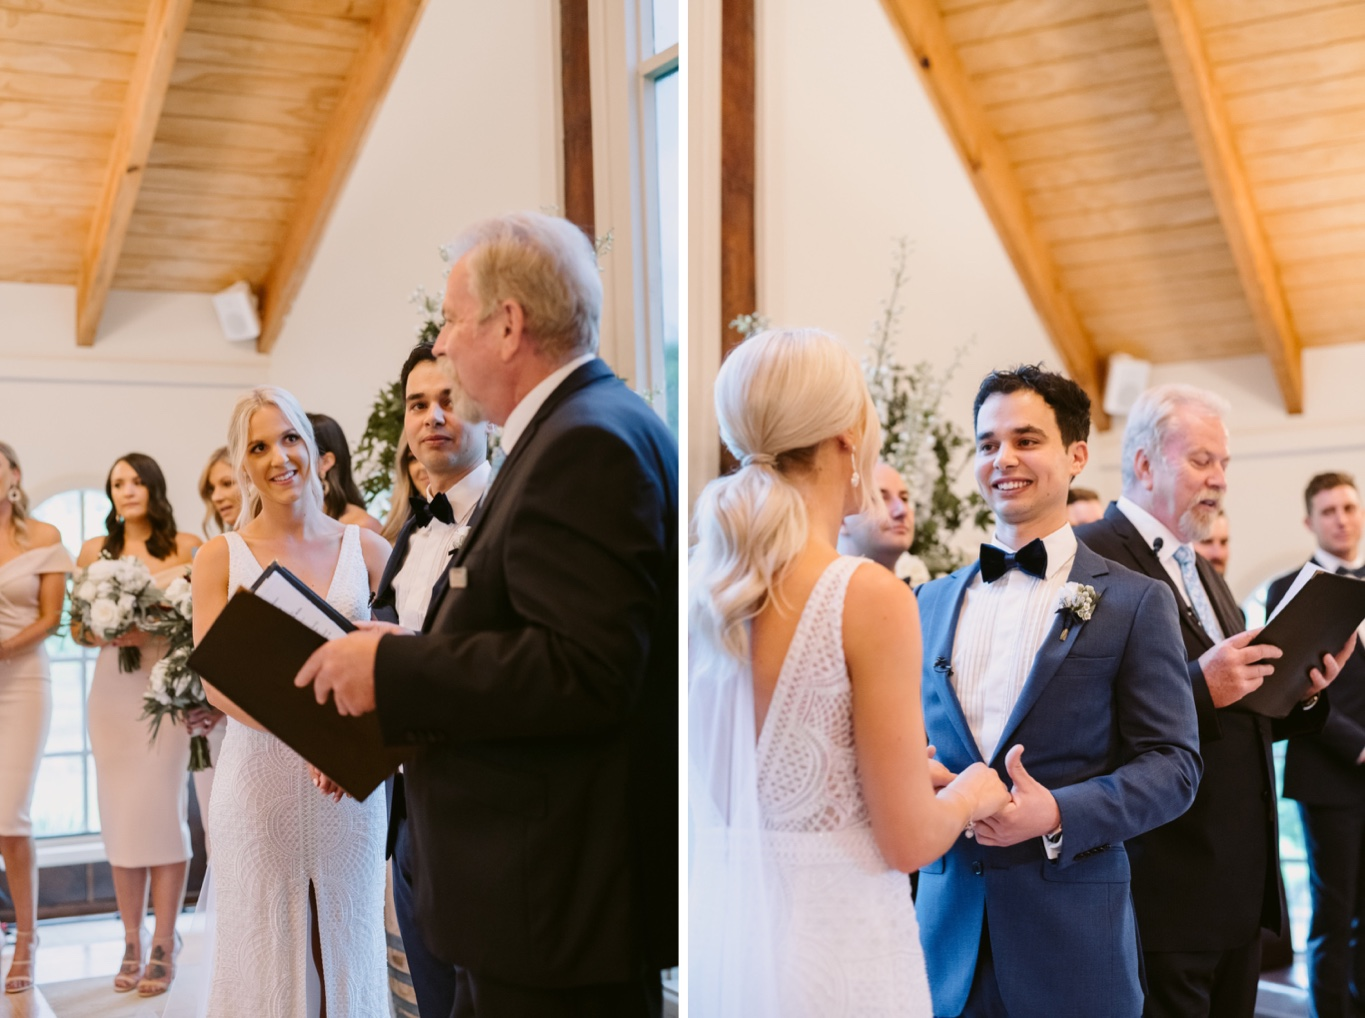 Immerse Yarra Valley Winery Wedding Photography52.jpg